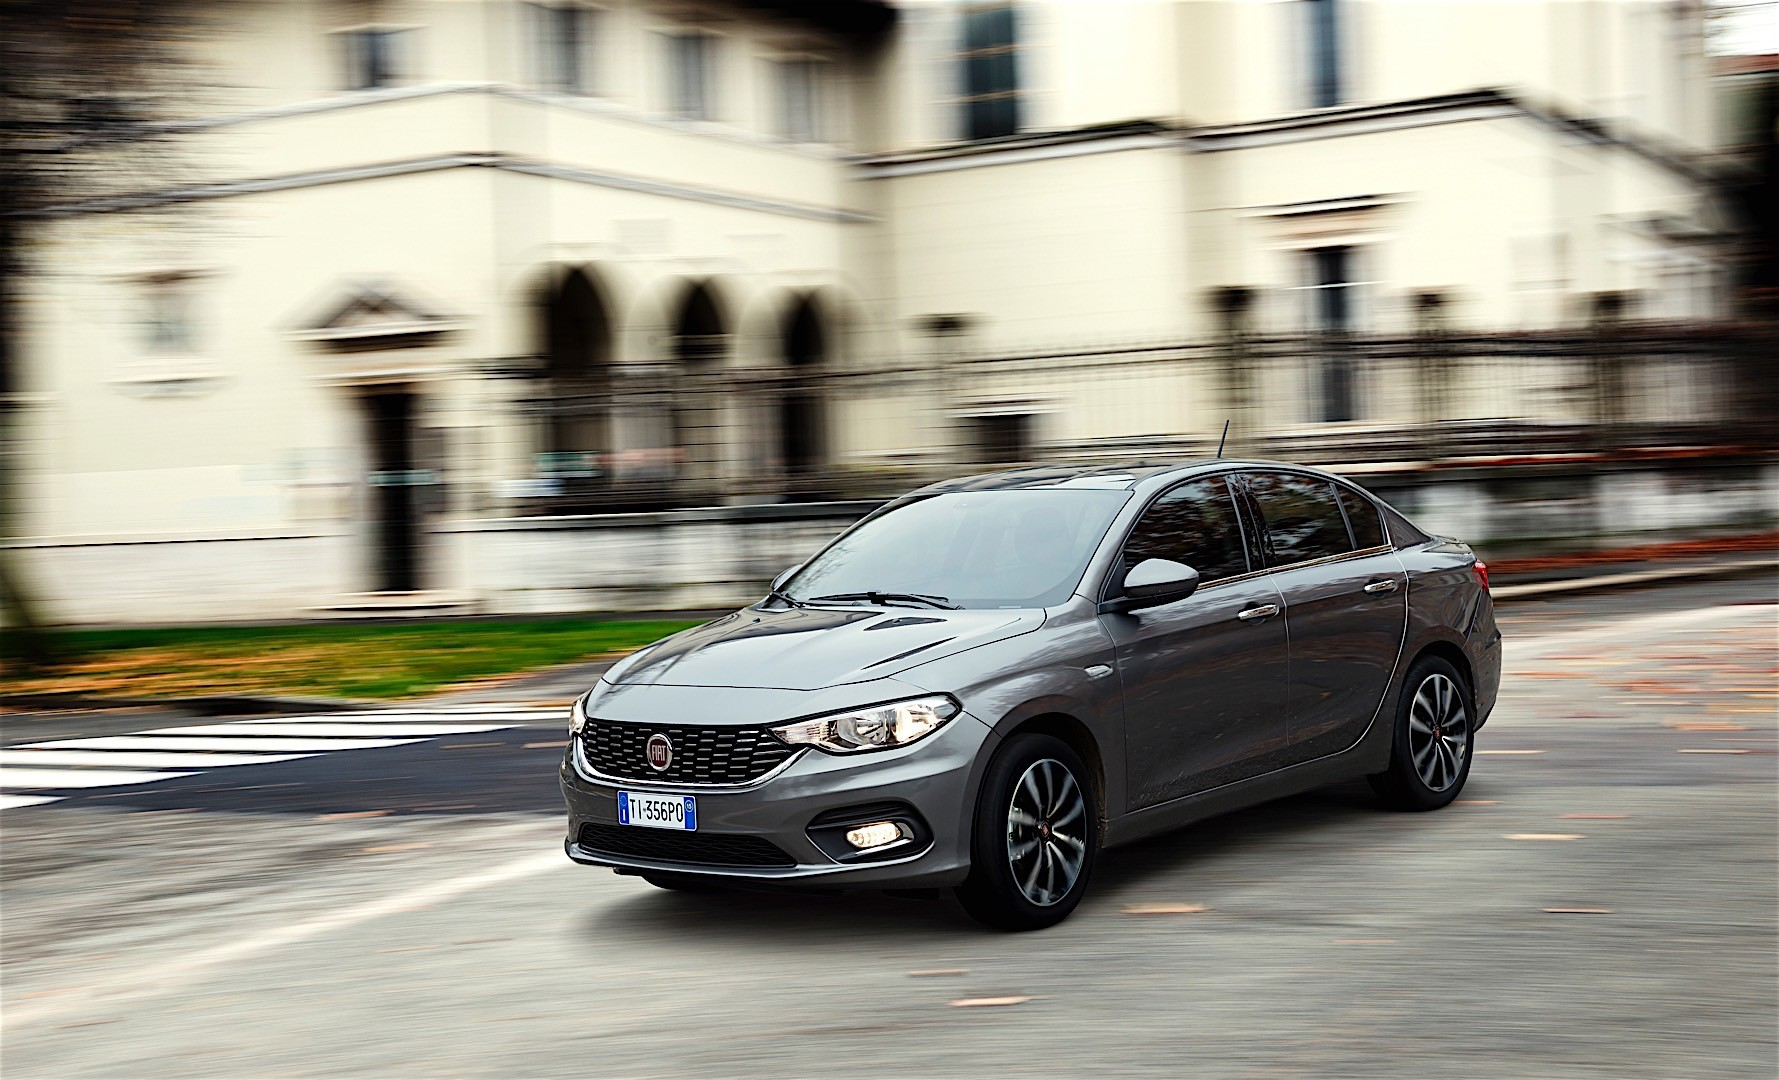 2016 Fiat Tipo 1.3 Multijet II 95 HP Launched in Italy at ...